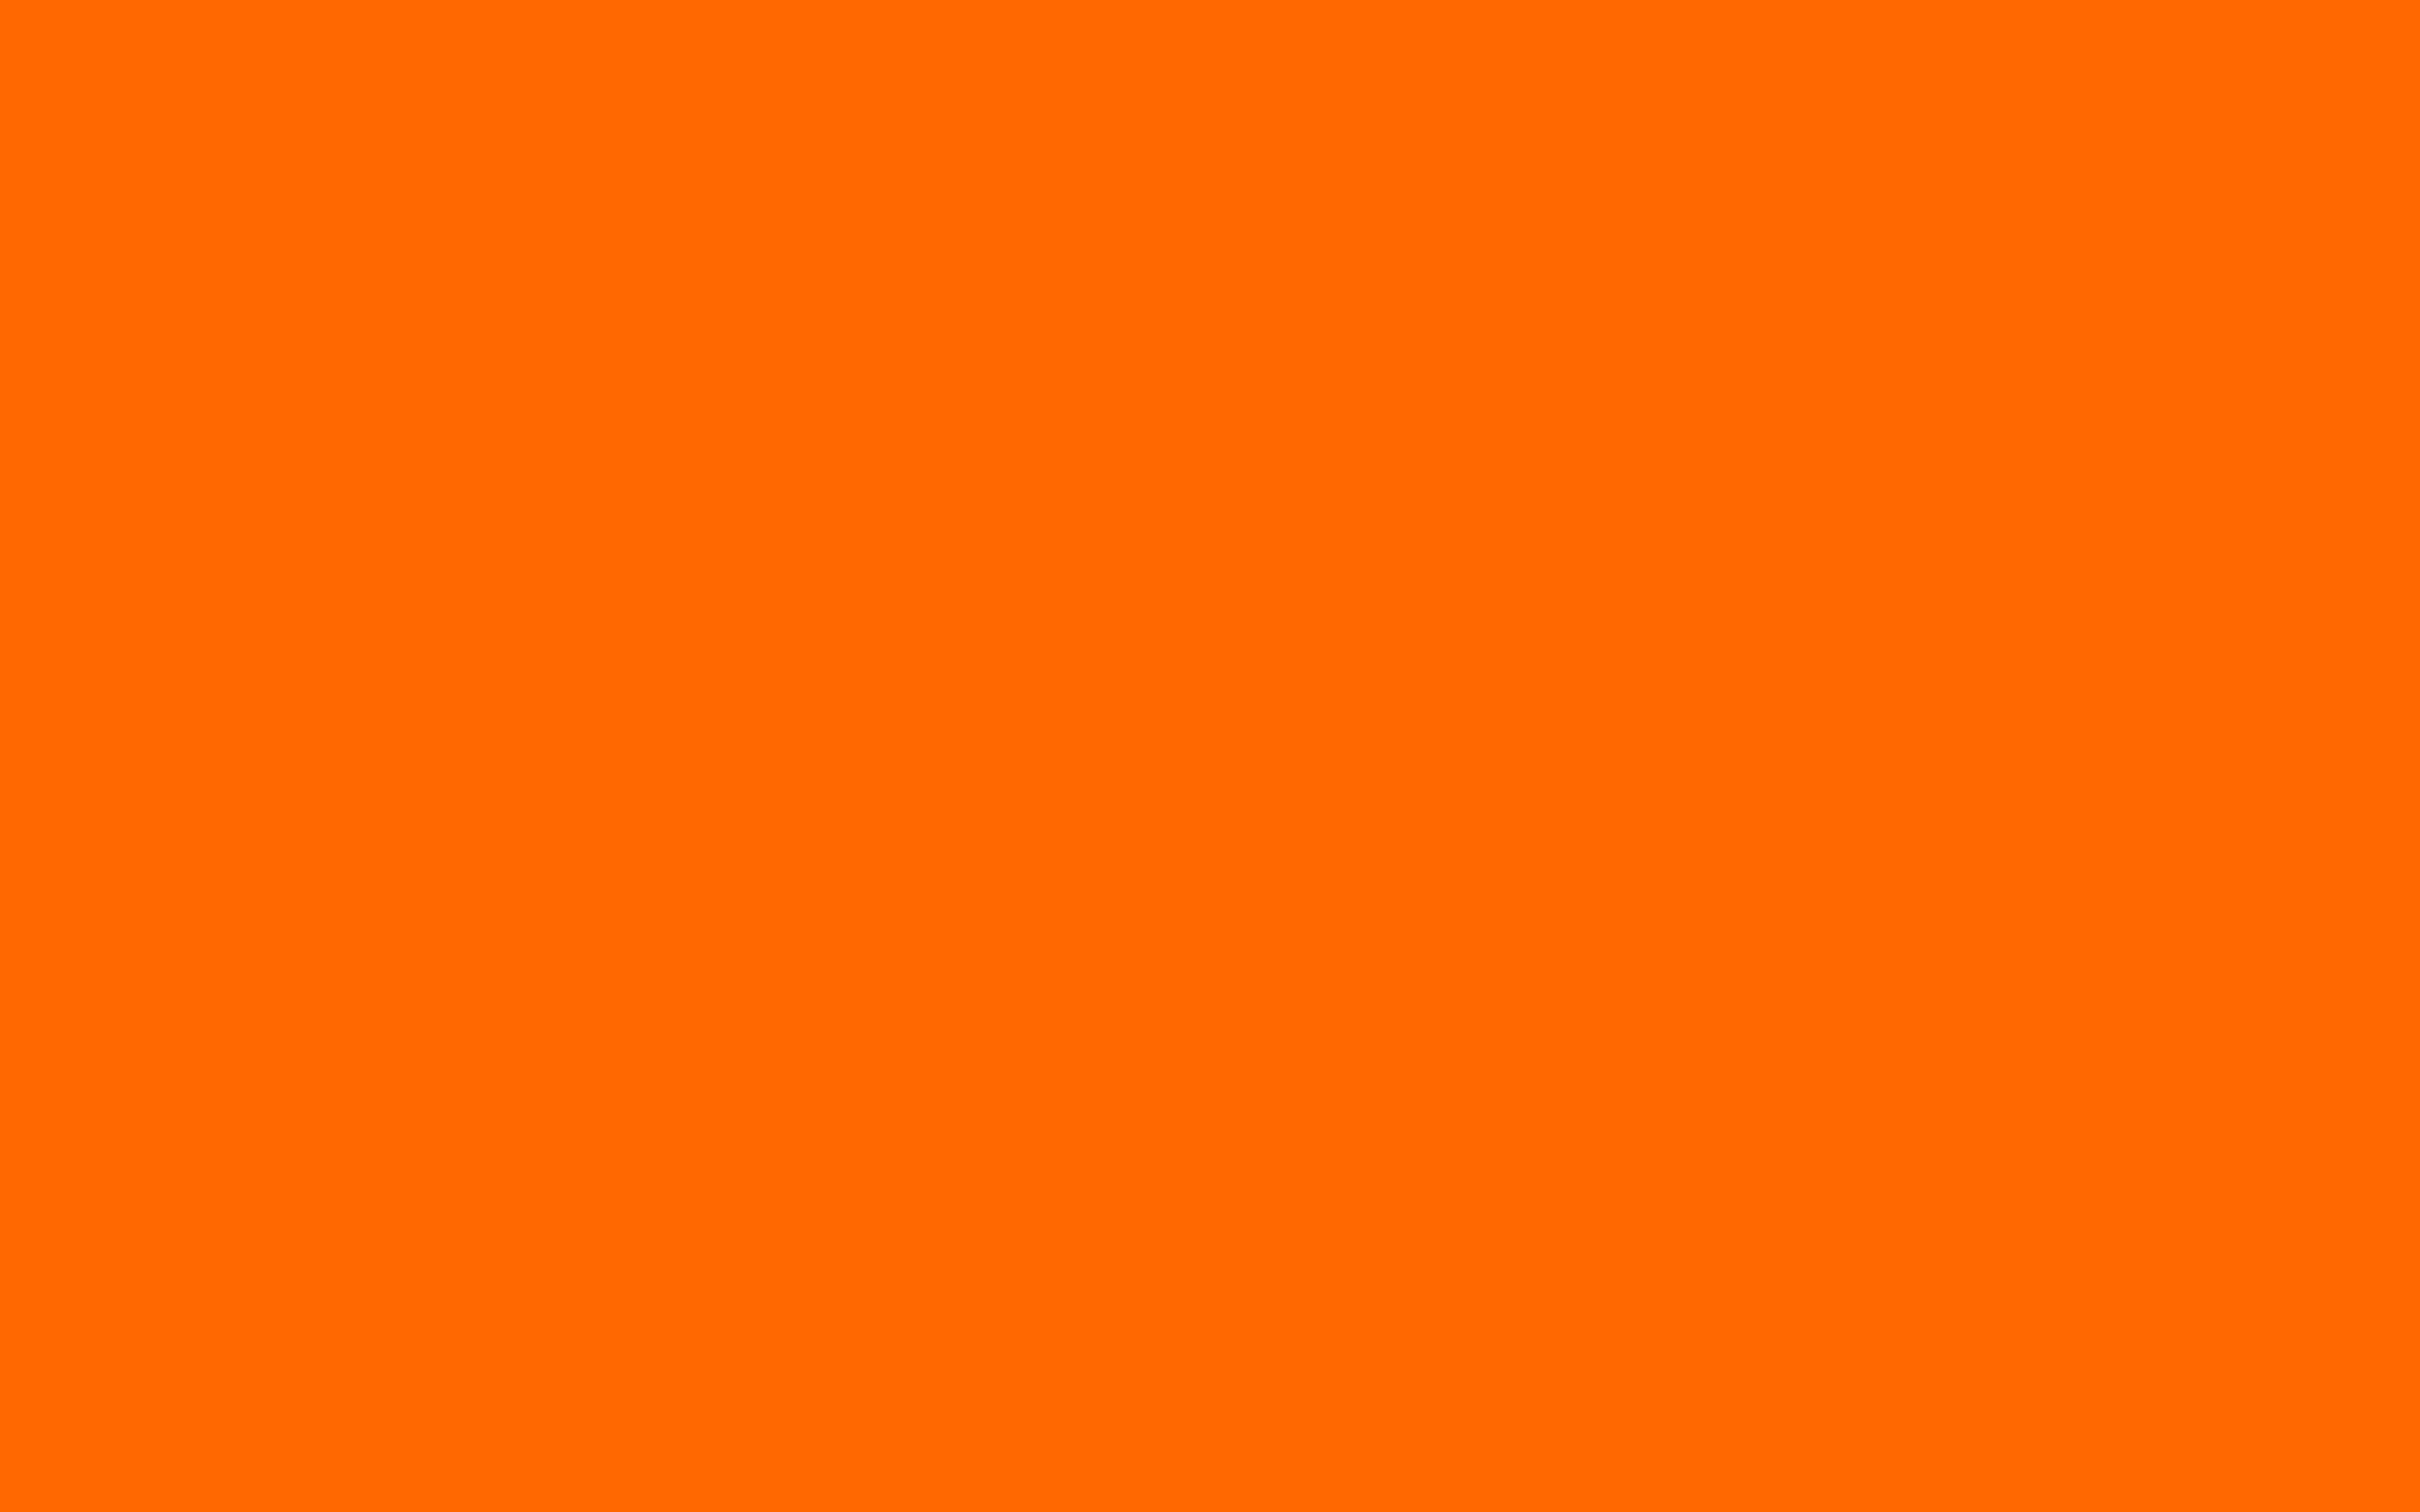 2880x1800 safety orange blaze orange solid color backgroundjpg 2880x1800